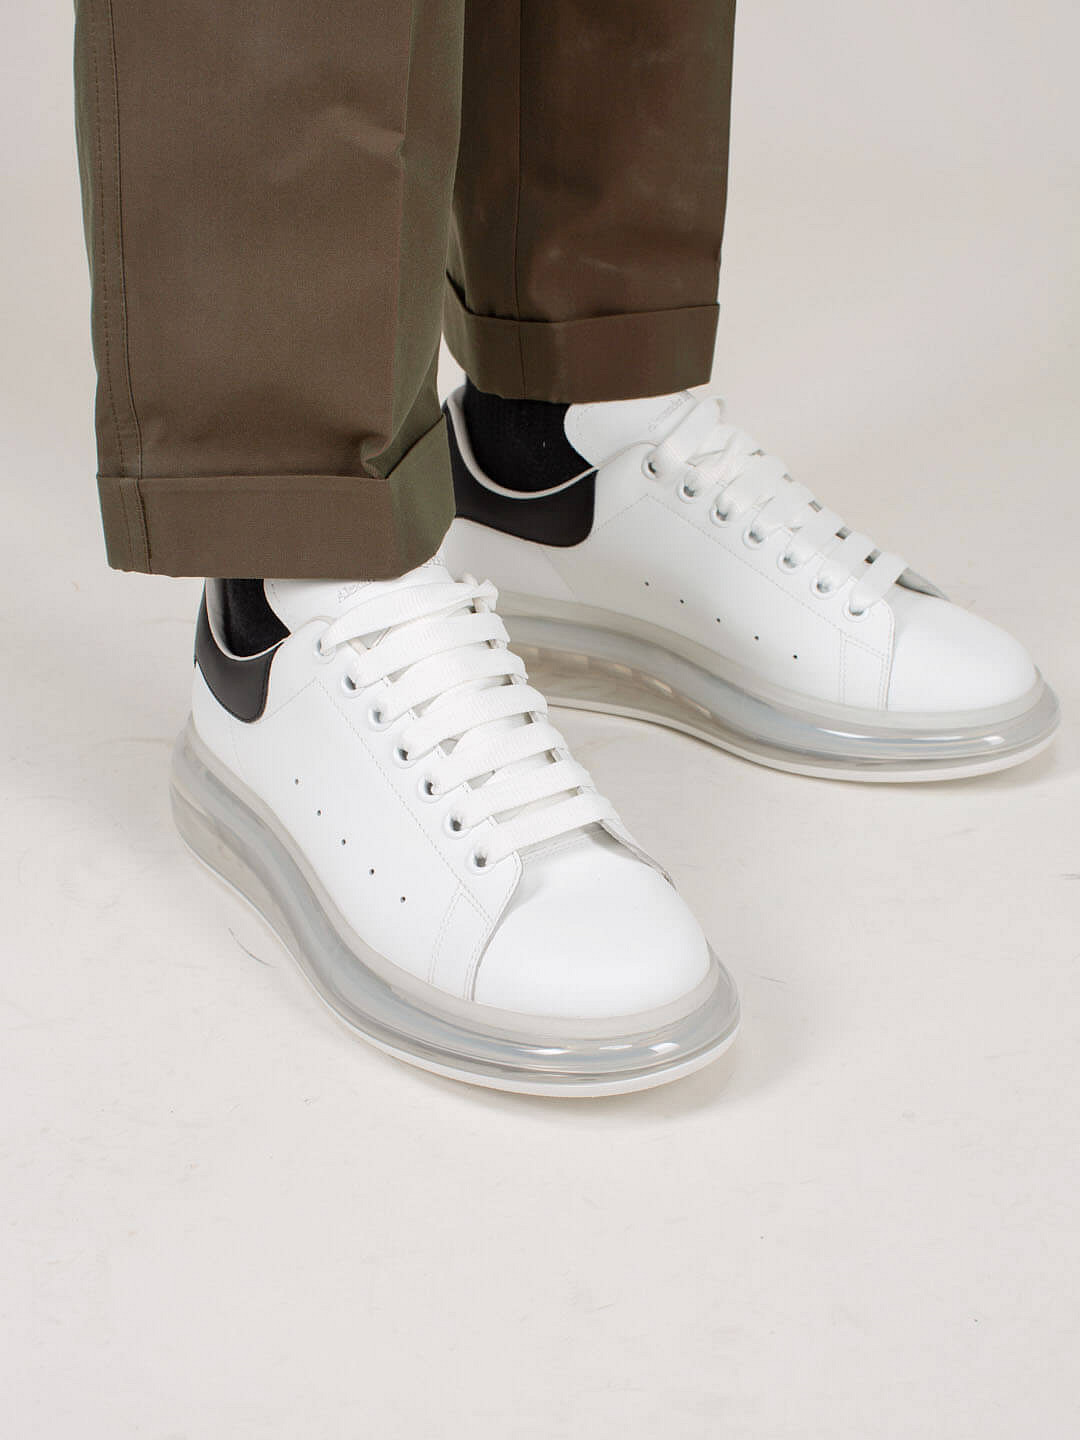 white Low Top Lace Up Sneaker black Transparant Sole